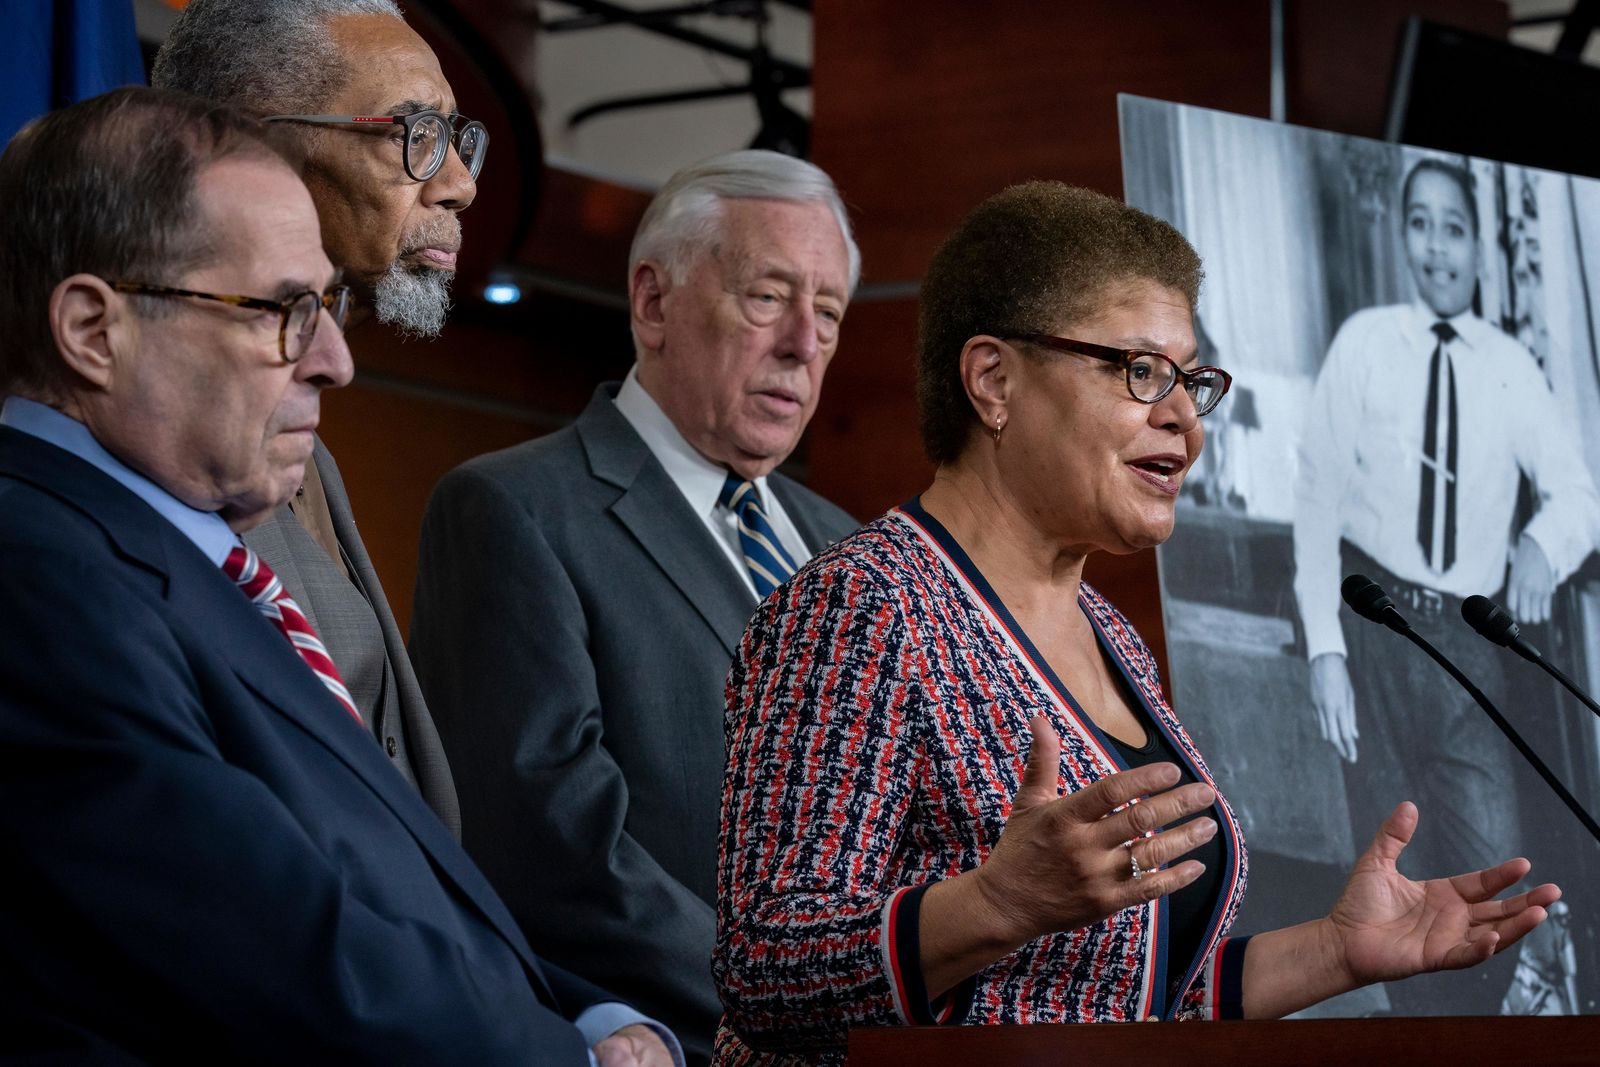 "From left, House Judiciary Committee Chairman Jerrold Nadler, D-N.Y., Rep. Bobby Rush, D-Ill., House Majority Leader Steny Hoyer, D-Md., and Rep. Karen Bass, D-Calif., chair of the Congressional Black Caucus, hold a news conference to discuss the ""Emmett Till Antilynching Act"" which would designate lynching as a hate crime under federal law, on Capitol Hill in Washington, Wednesday, Feb. 26, 2020. Emmett Till, pictured at right, was a 14-year-old African-American who was lynched in Mississippi in 1955, after being accused of offending a white woman in her family's grocery store. (AP Photo/J. Scott Applewhite)"